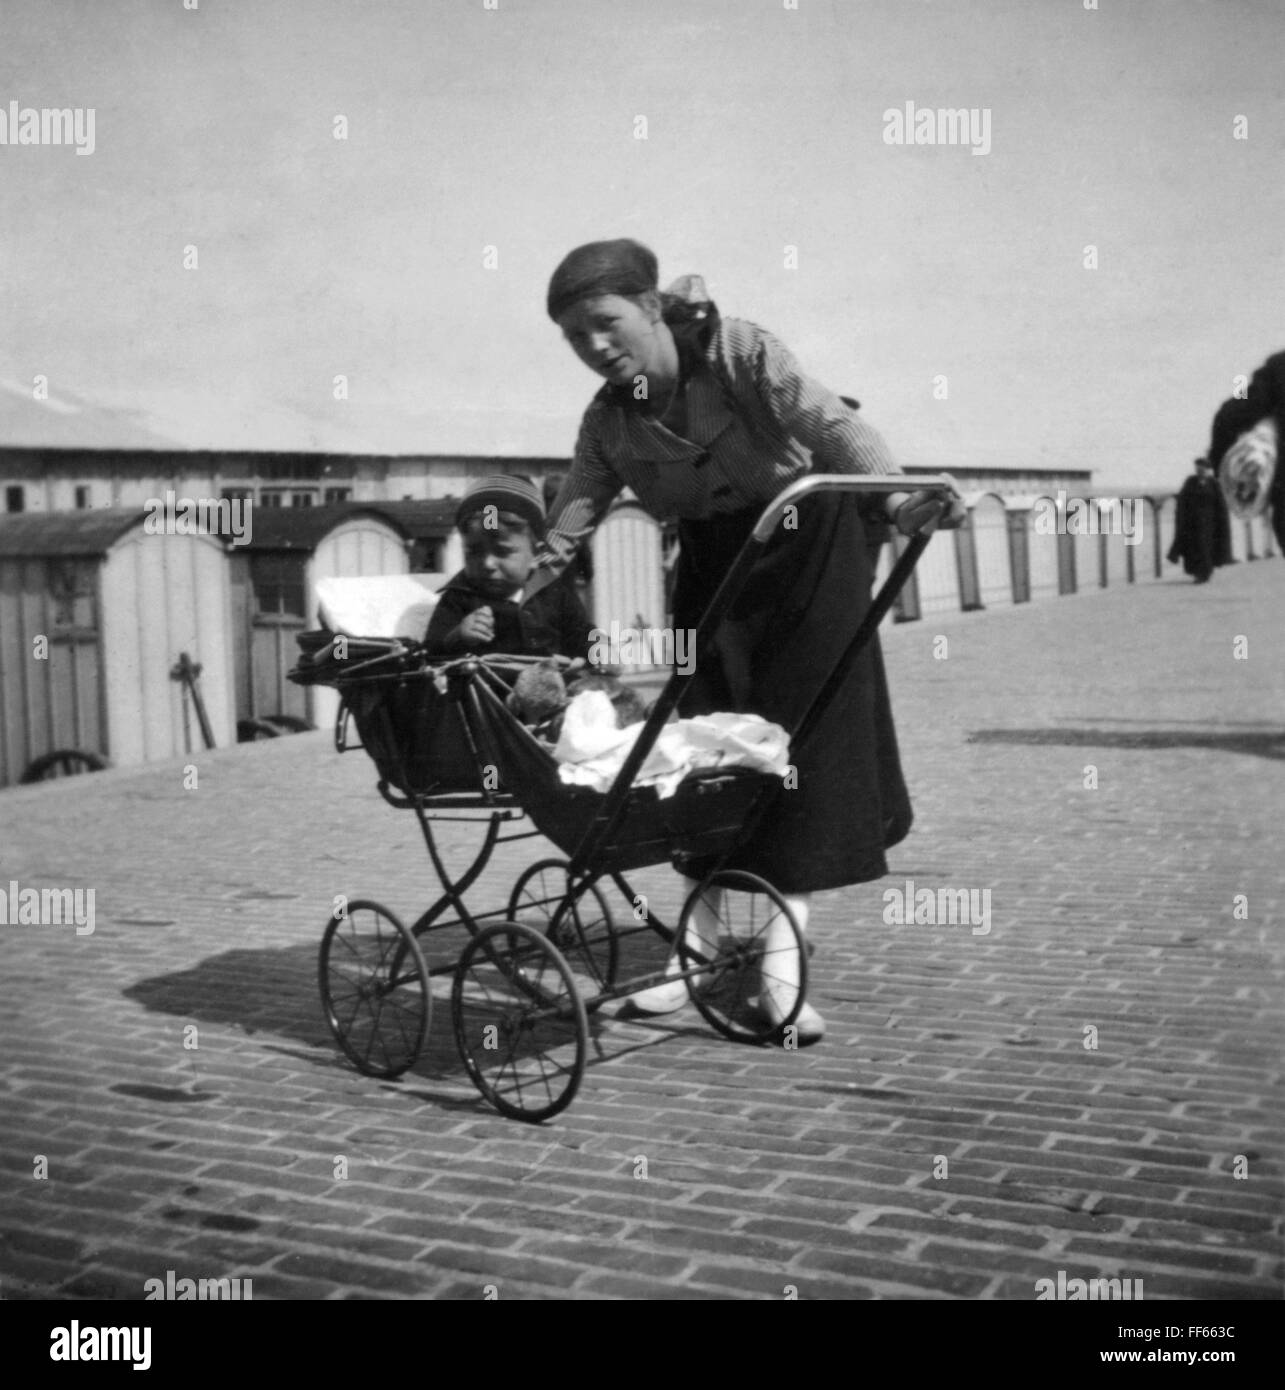 tourism, Germany, Norderney, mother with pram on the promenade, 1921, Additional-Rights-Clearences-NA - Stock Image